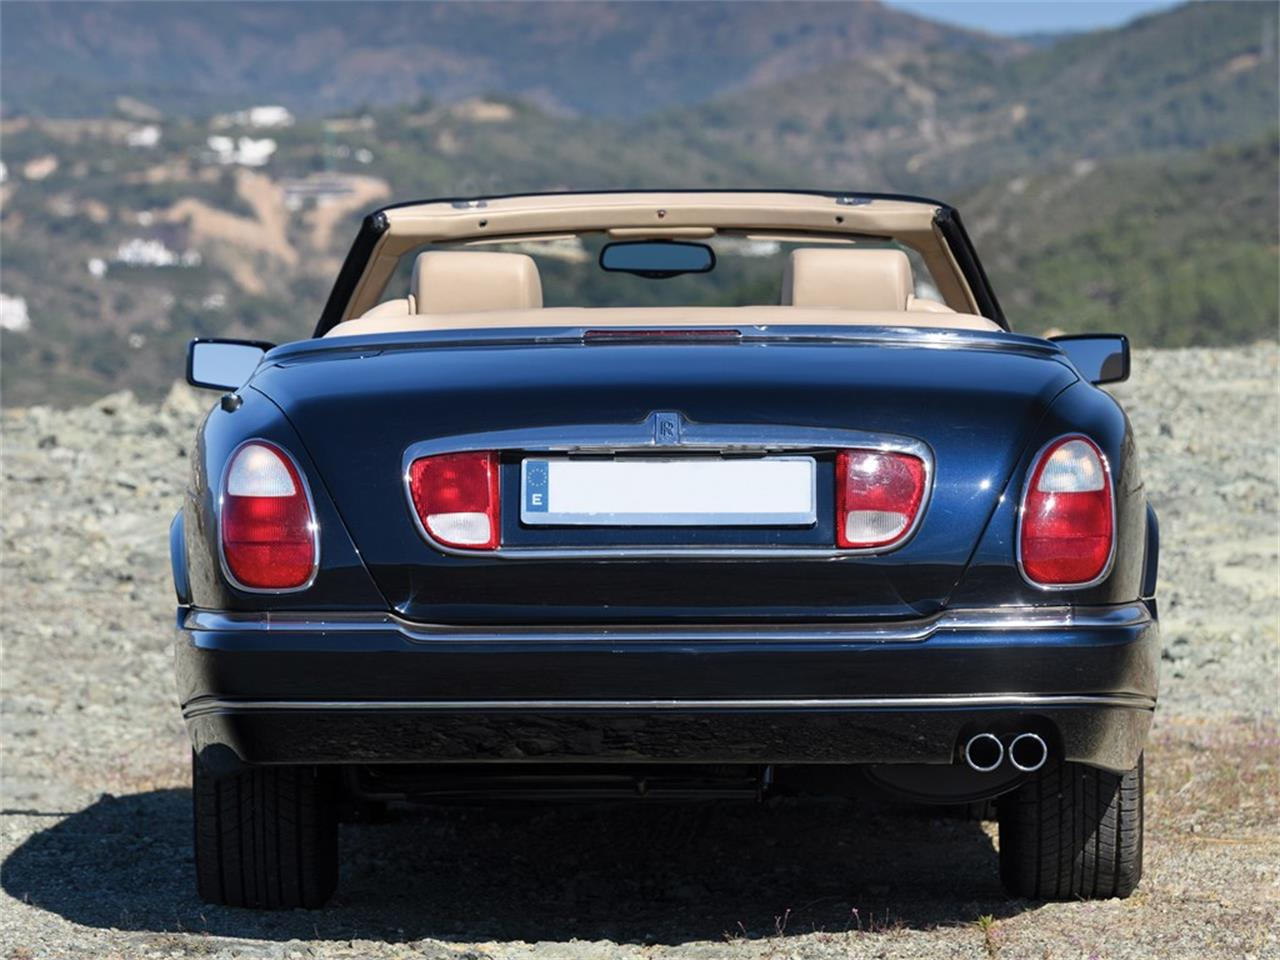 2000 Rolls-Royce Corniche for sale in Essen, Other – photo 8